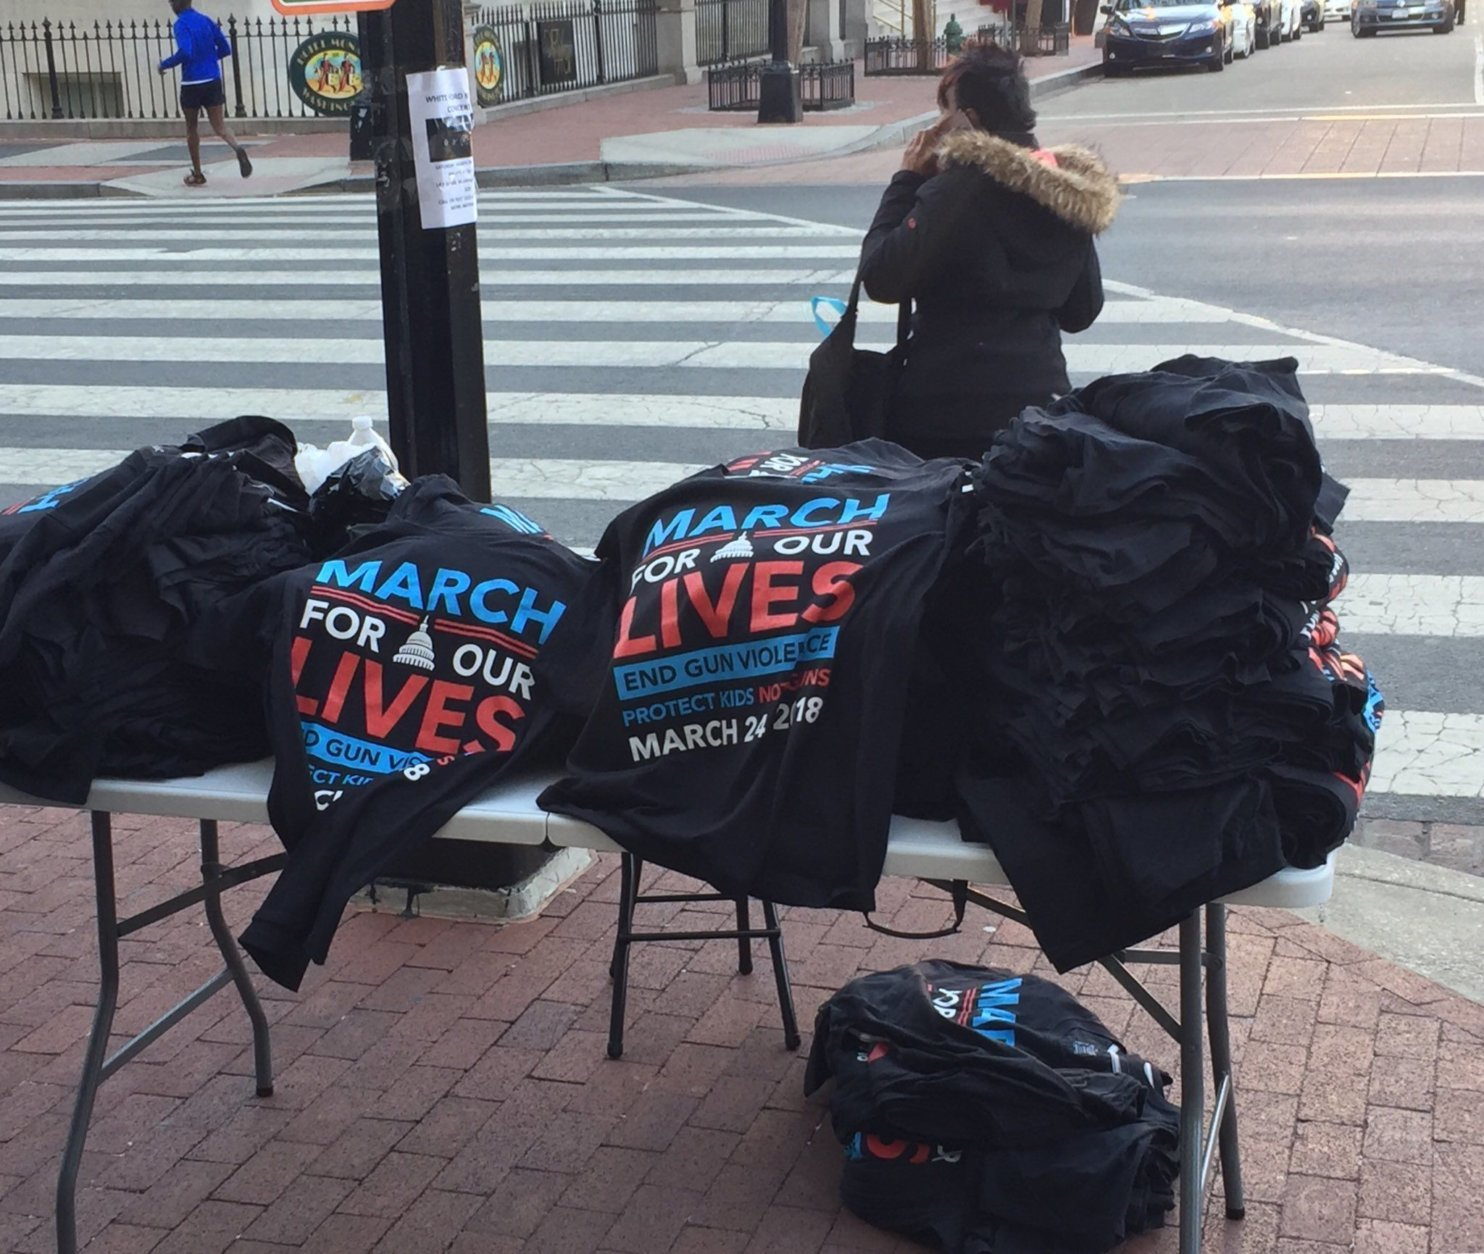 Outside Gallery Place just after 8 a.m., shirts are already being sold. (WTOP/John Domen)